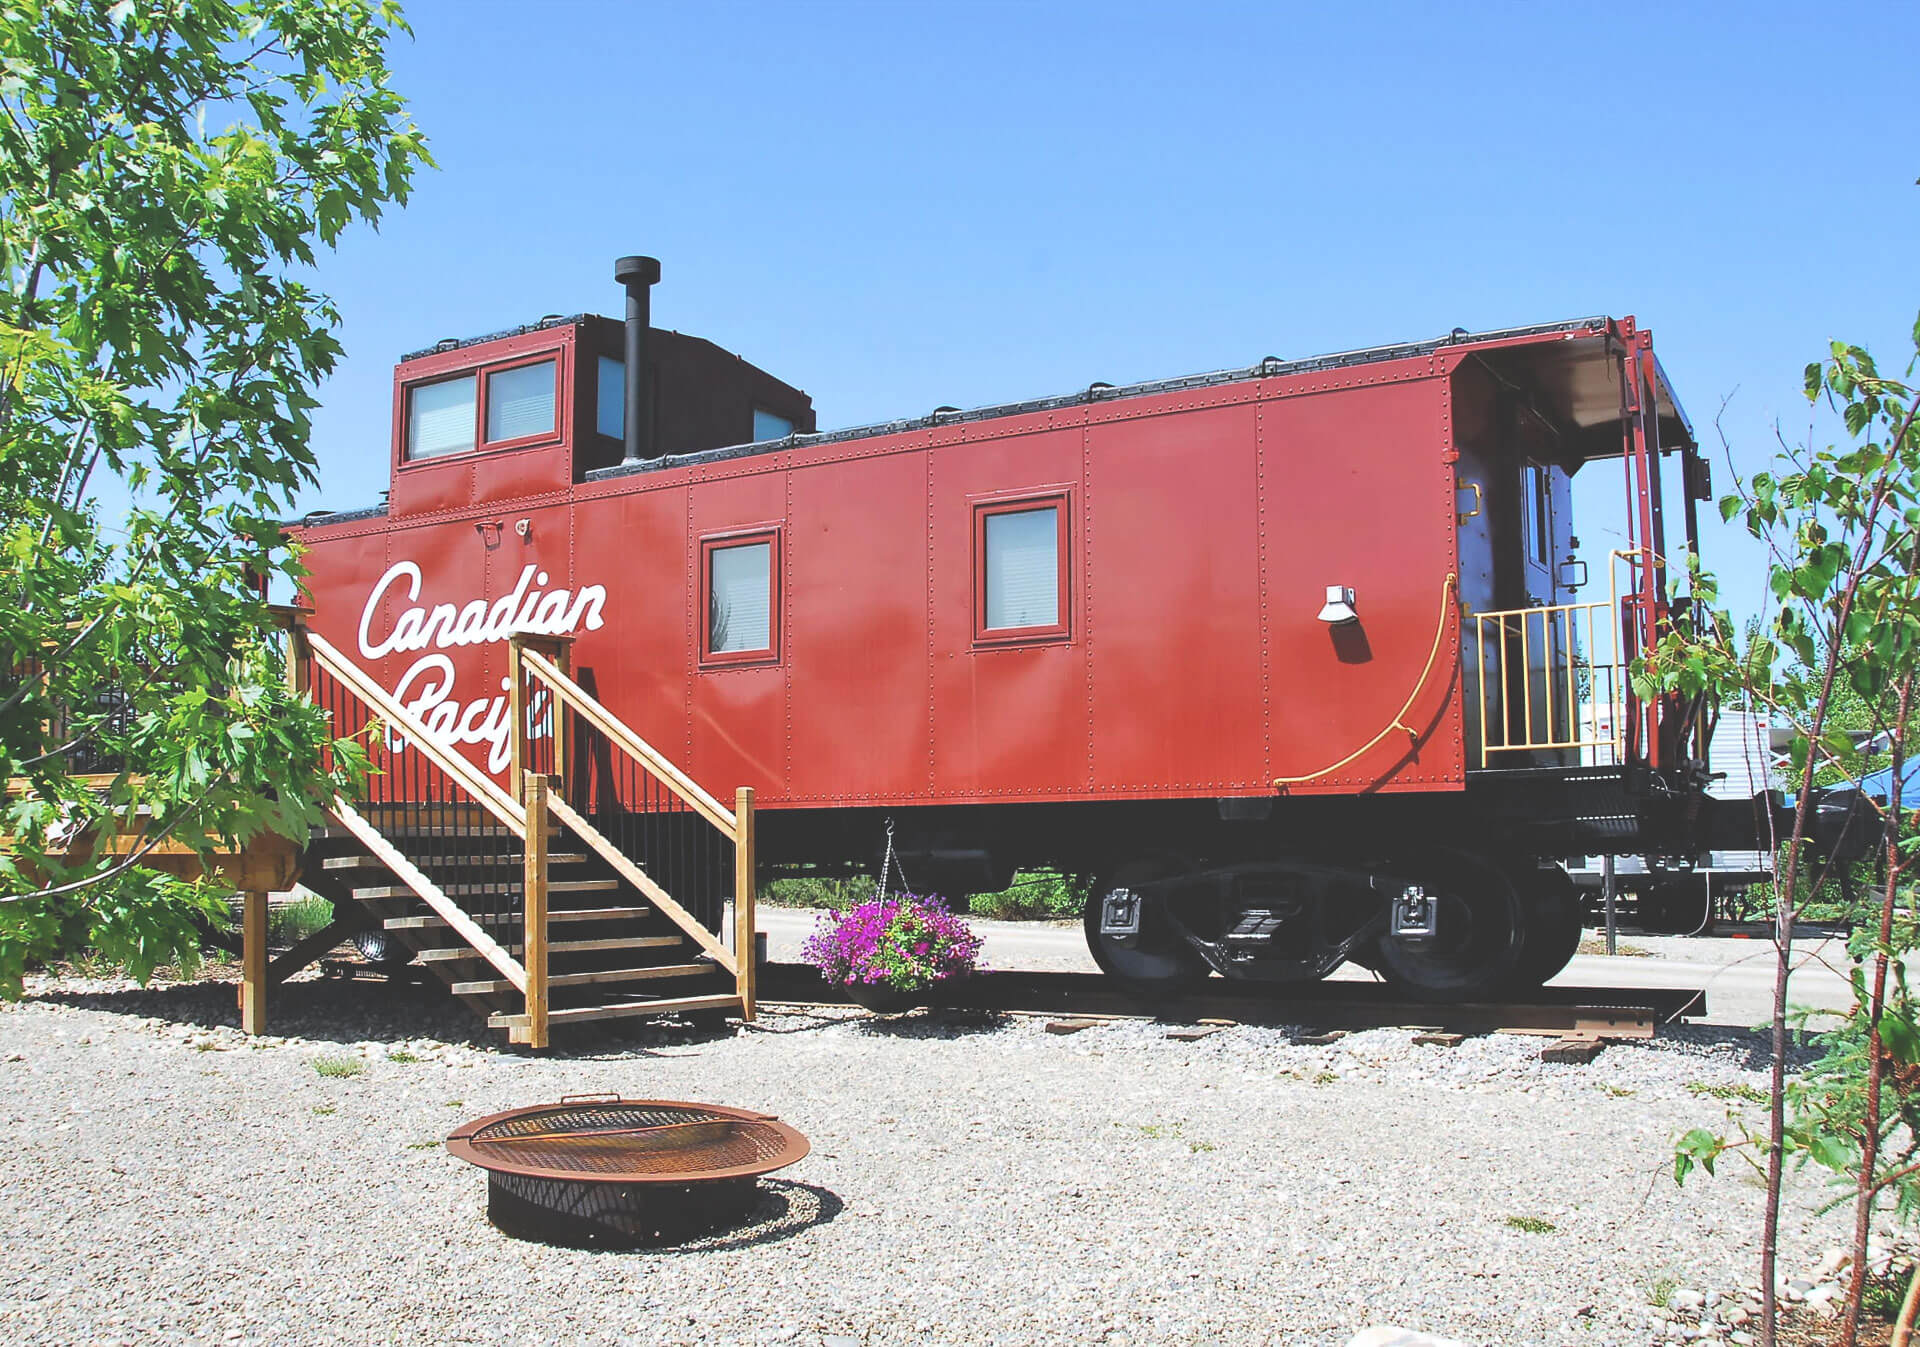 Locomotive at Aspen Crossing